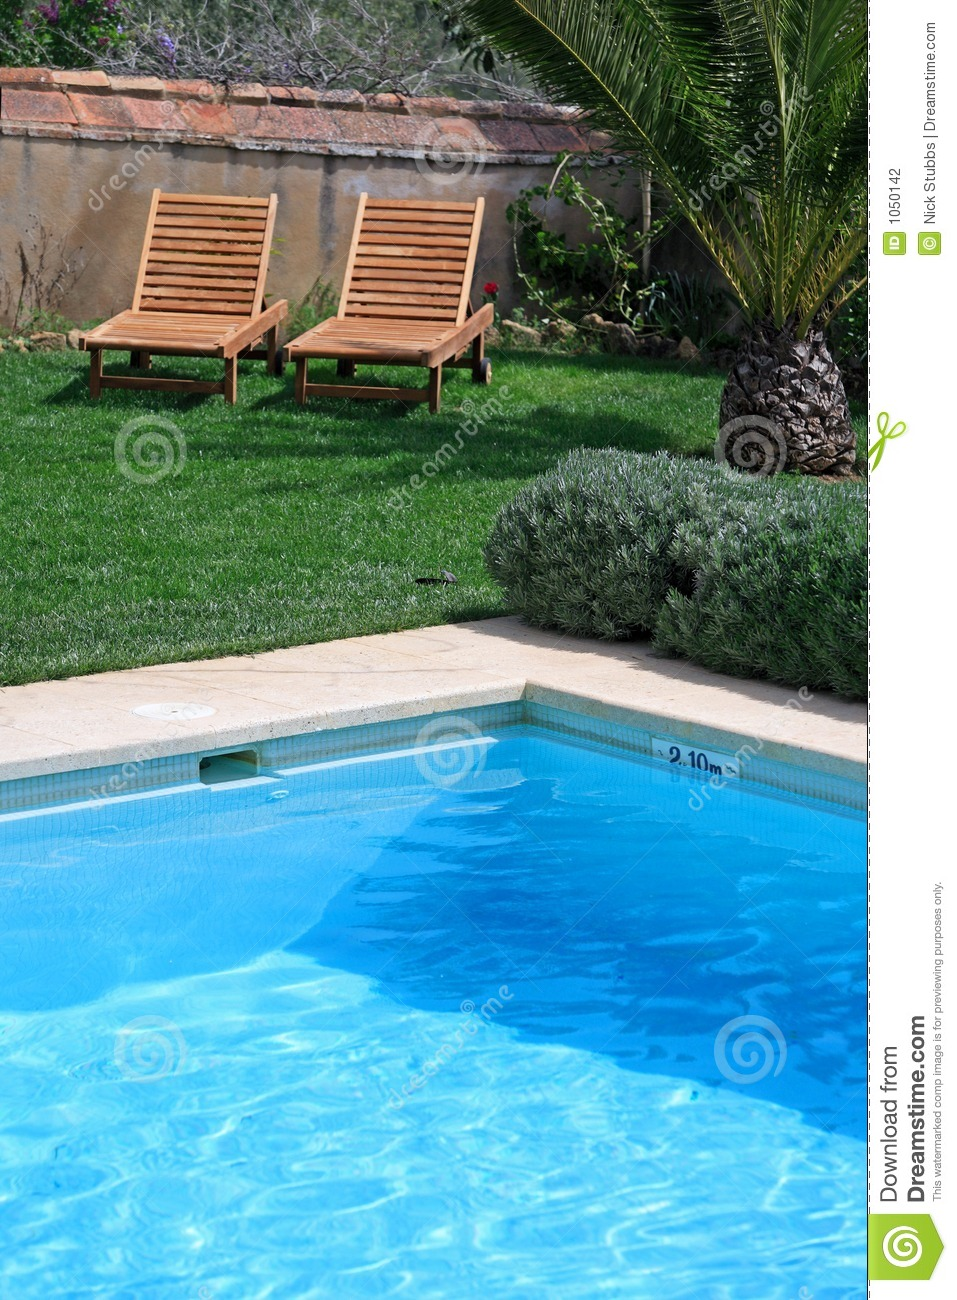 Luxury spanish house with swimming pool royalty free stock photo 23759829 for What is swimming pool in spanish